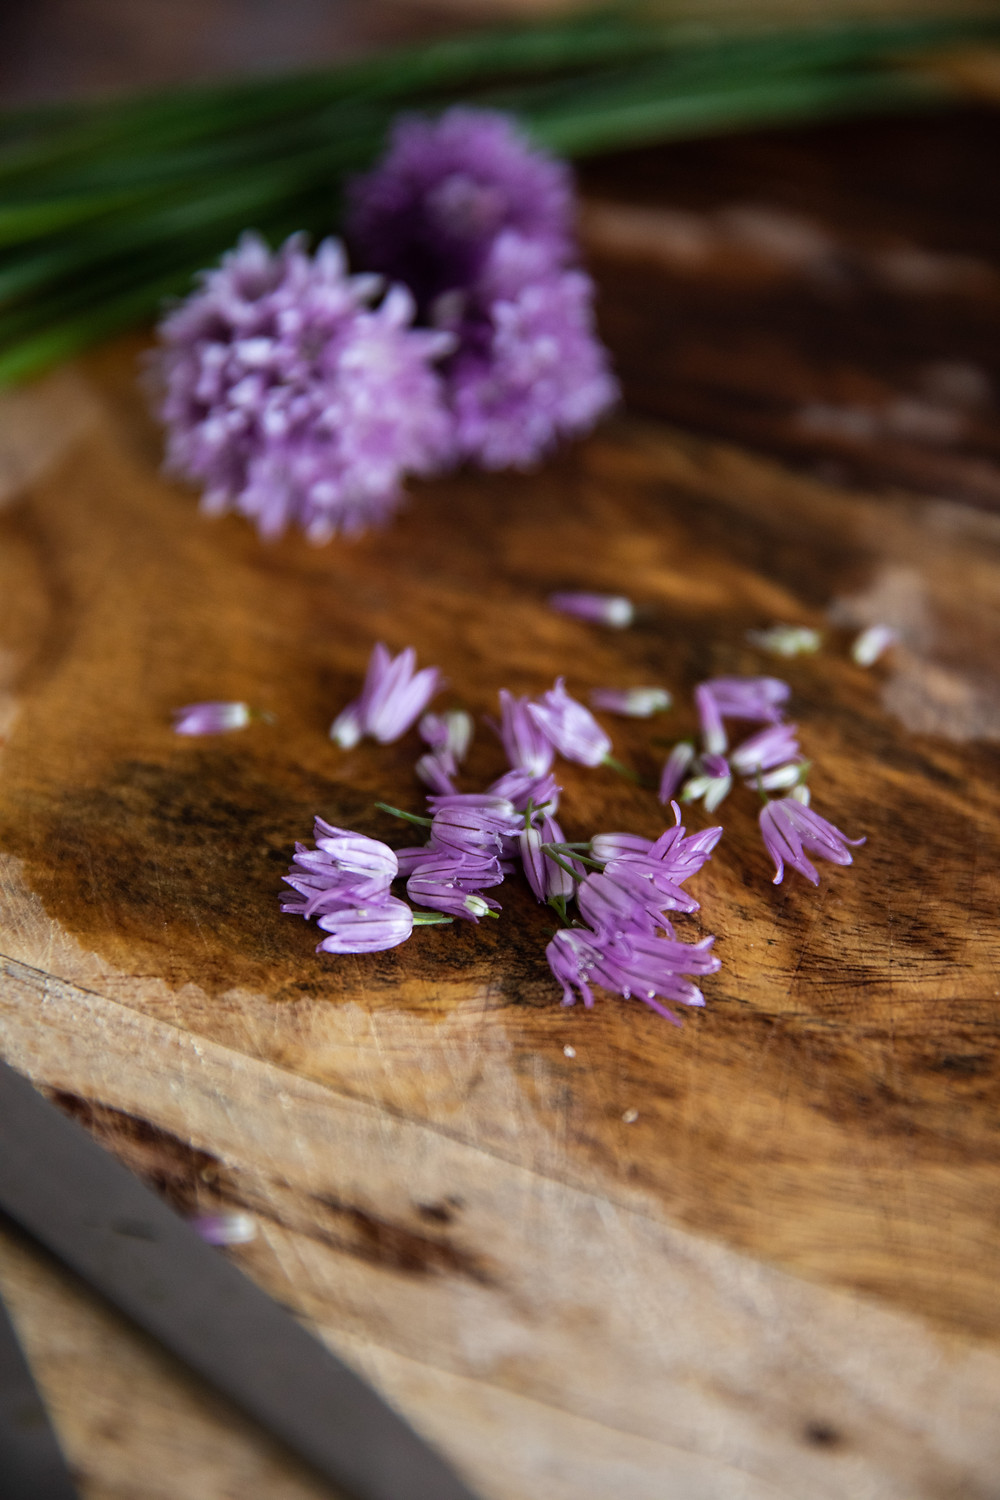 These lavender-colored flowers are not only beautiful, but EDIBLE and DELICIOUS!!